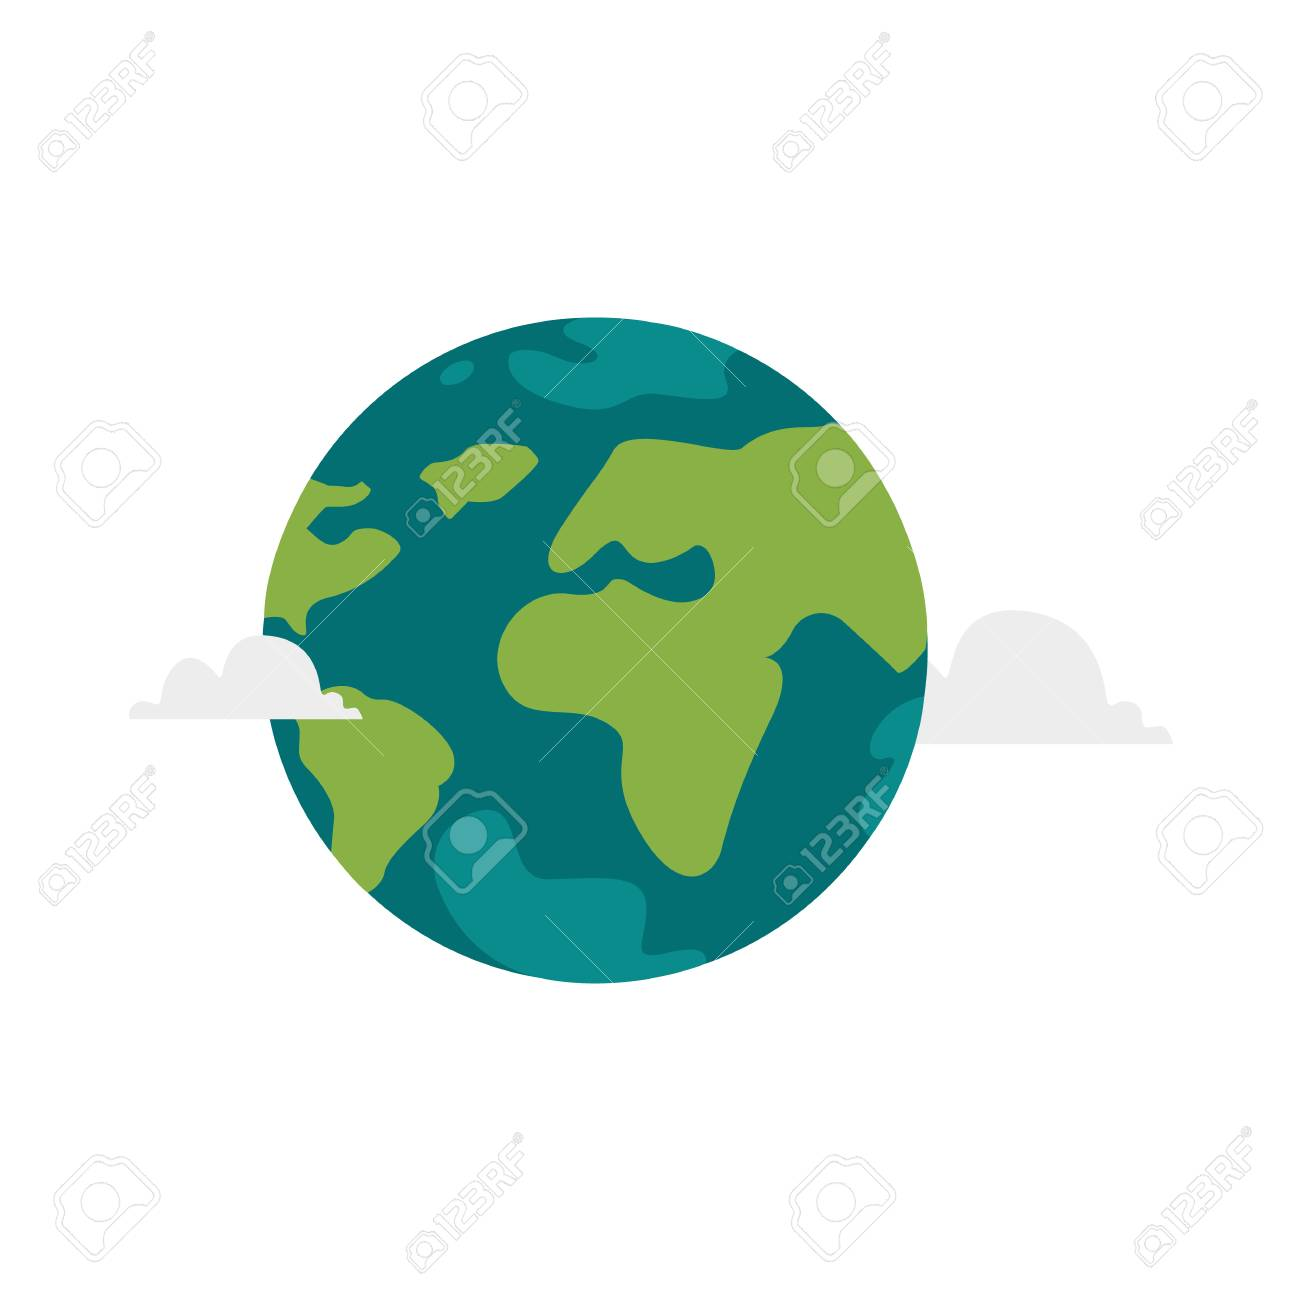 Illustration De Globe Plat Dessin Anime Vector Isole Sur Fond